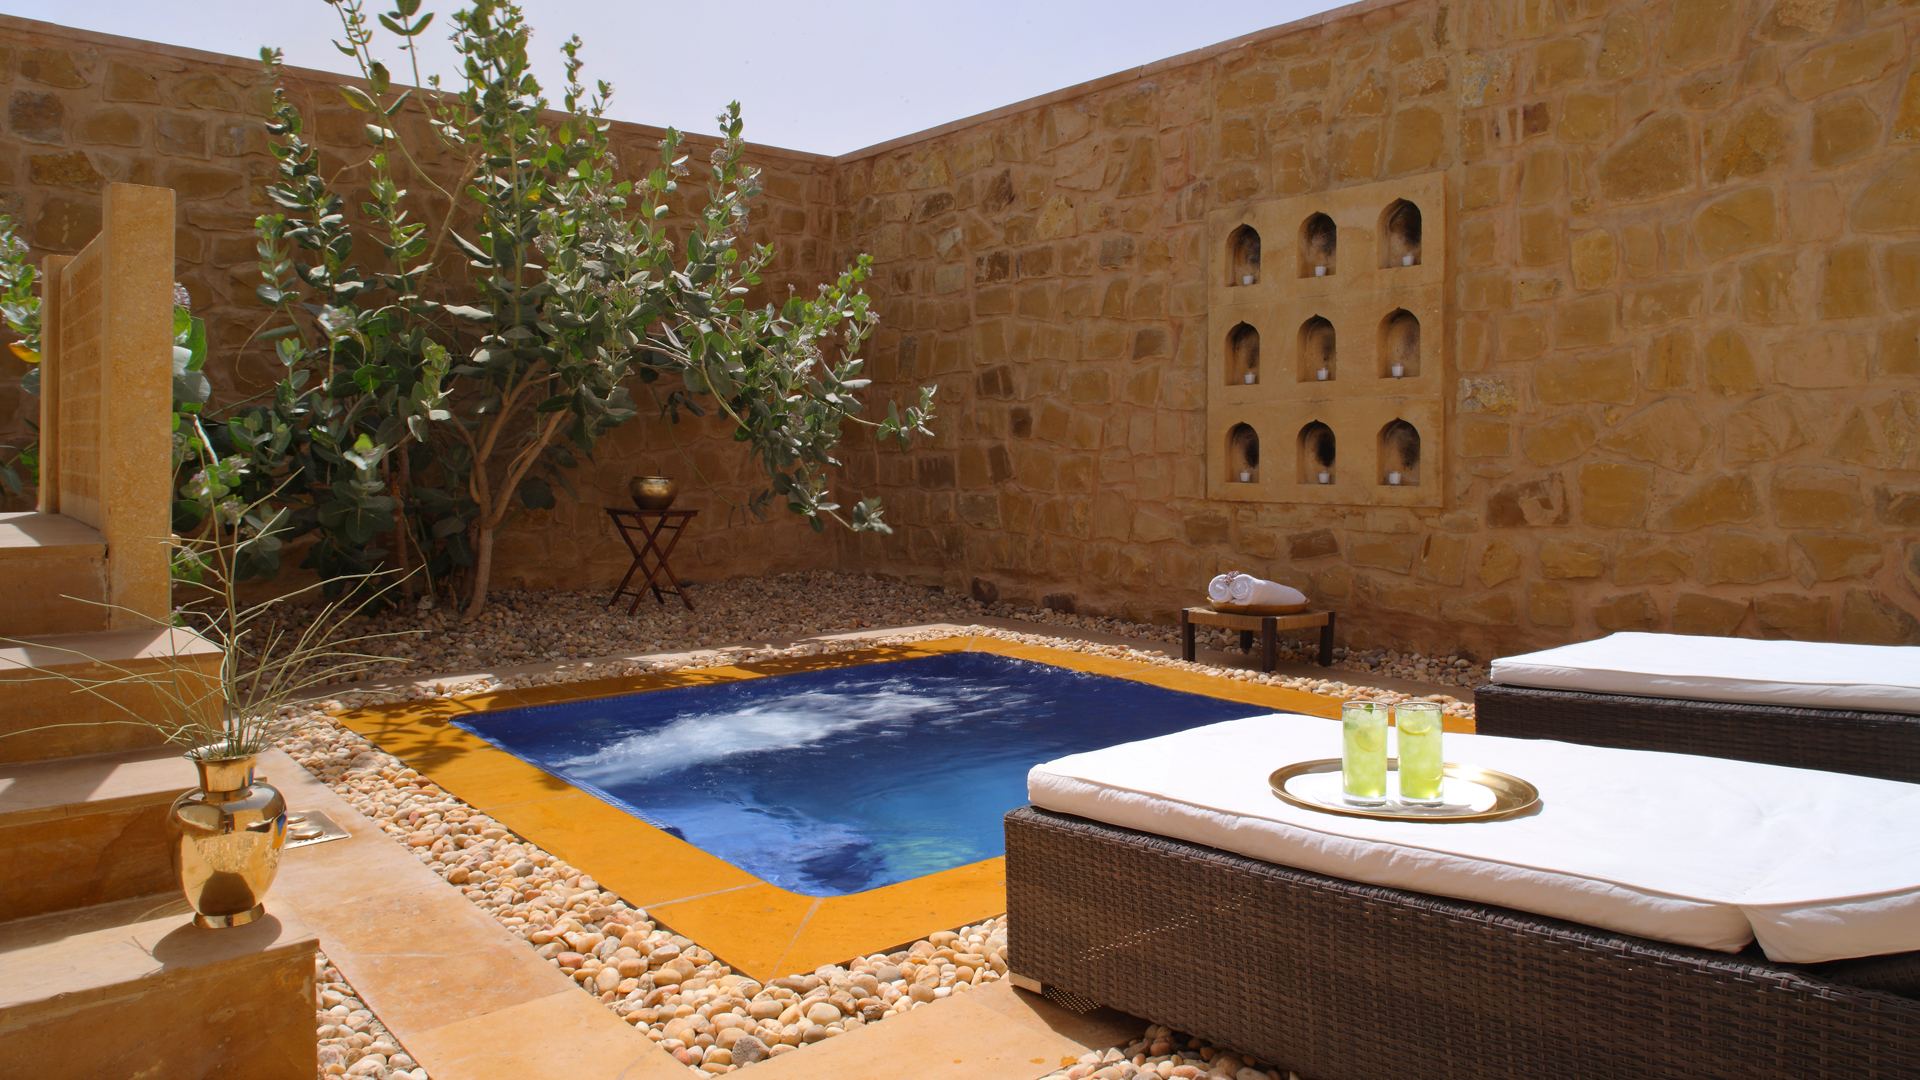 Jacuzzi Pool India The Serai Jaisalmer India Natural World Safaris